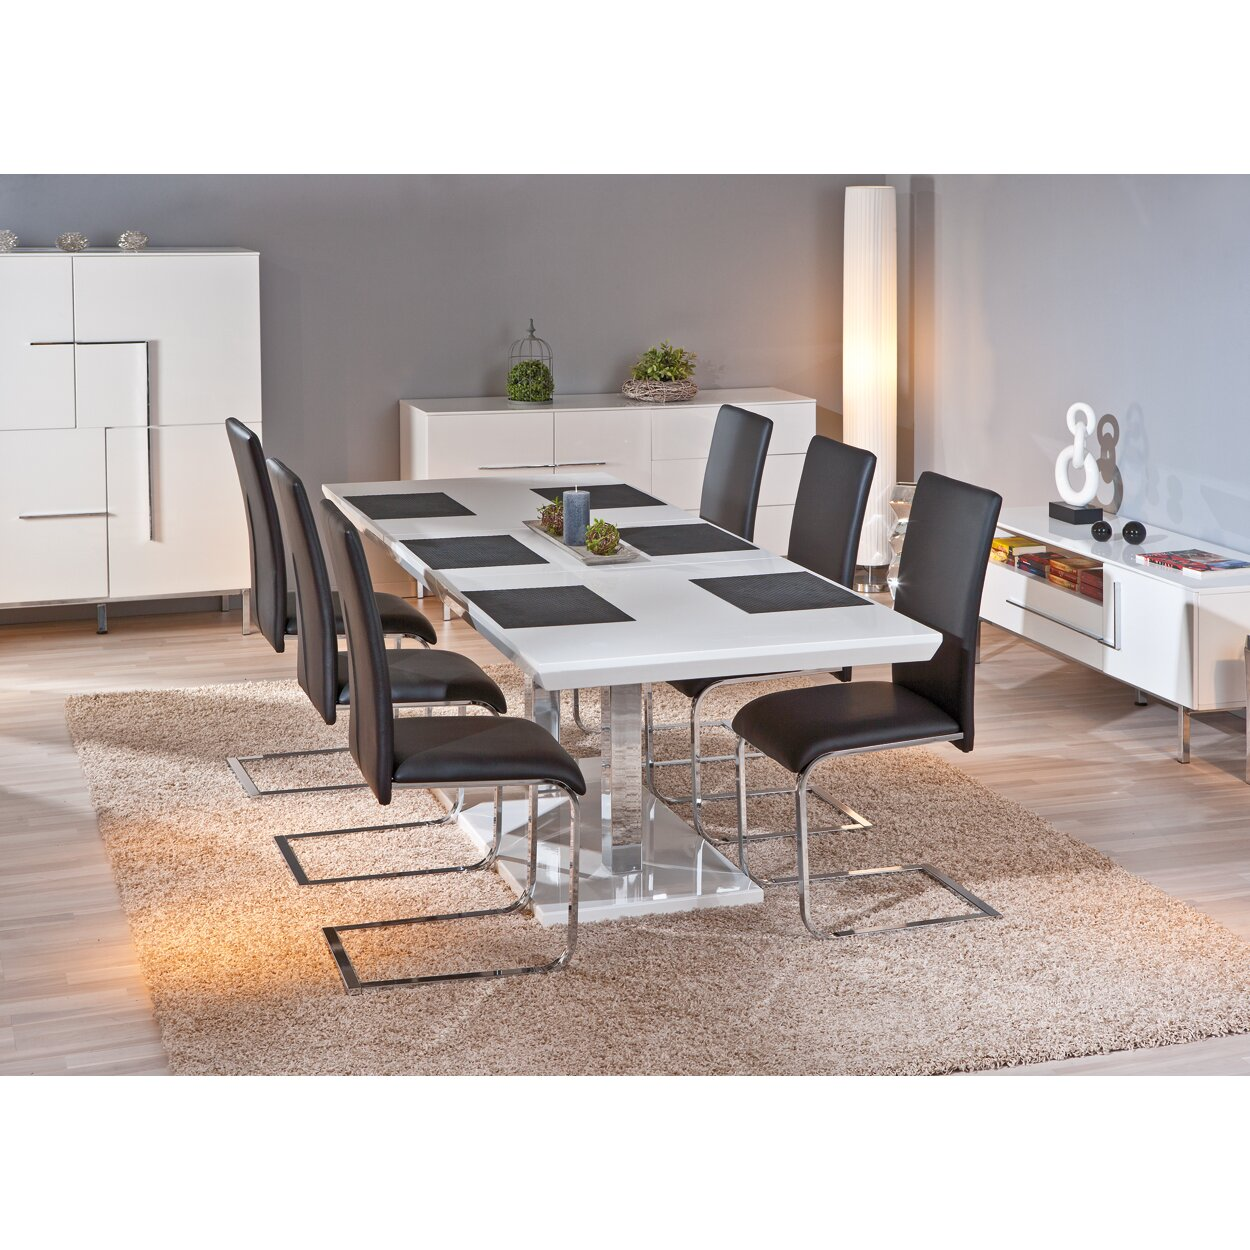 House Additions Edmonton Extendable Dining Table amp Reviews  : Edmonton Extendable Dining Table FOUS6285 from www.wayfair.co.uk size 1250 x 1250 jpeg 365kB